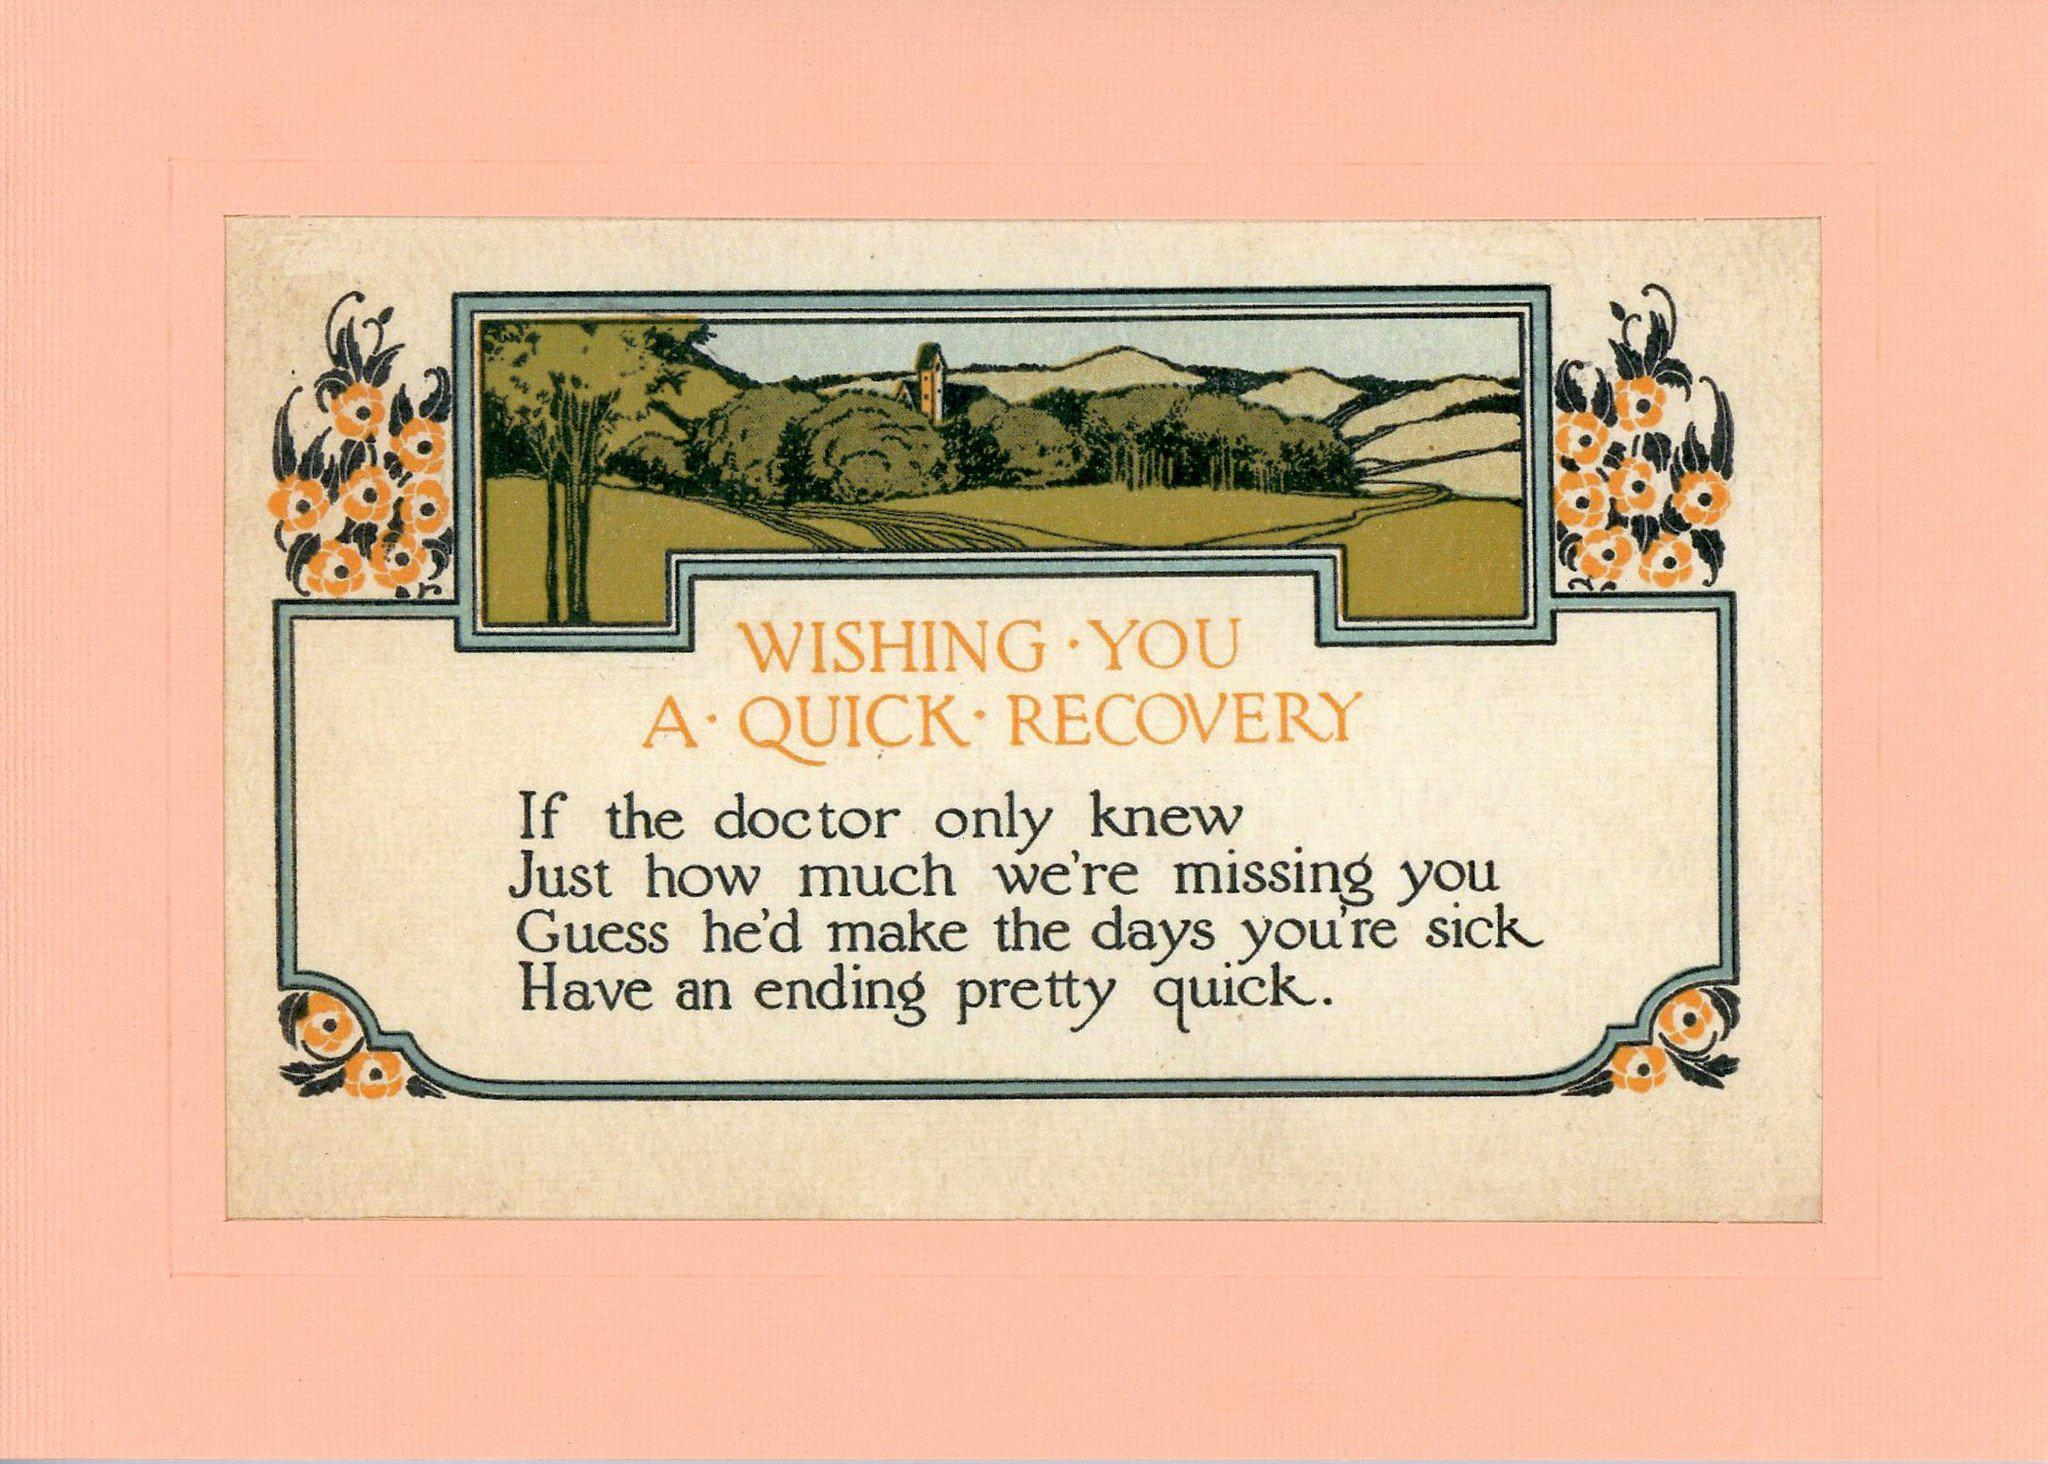 Wishing You A Quick Recovery-Greetings from the Past-Plymouth Cards